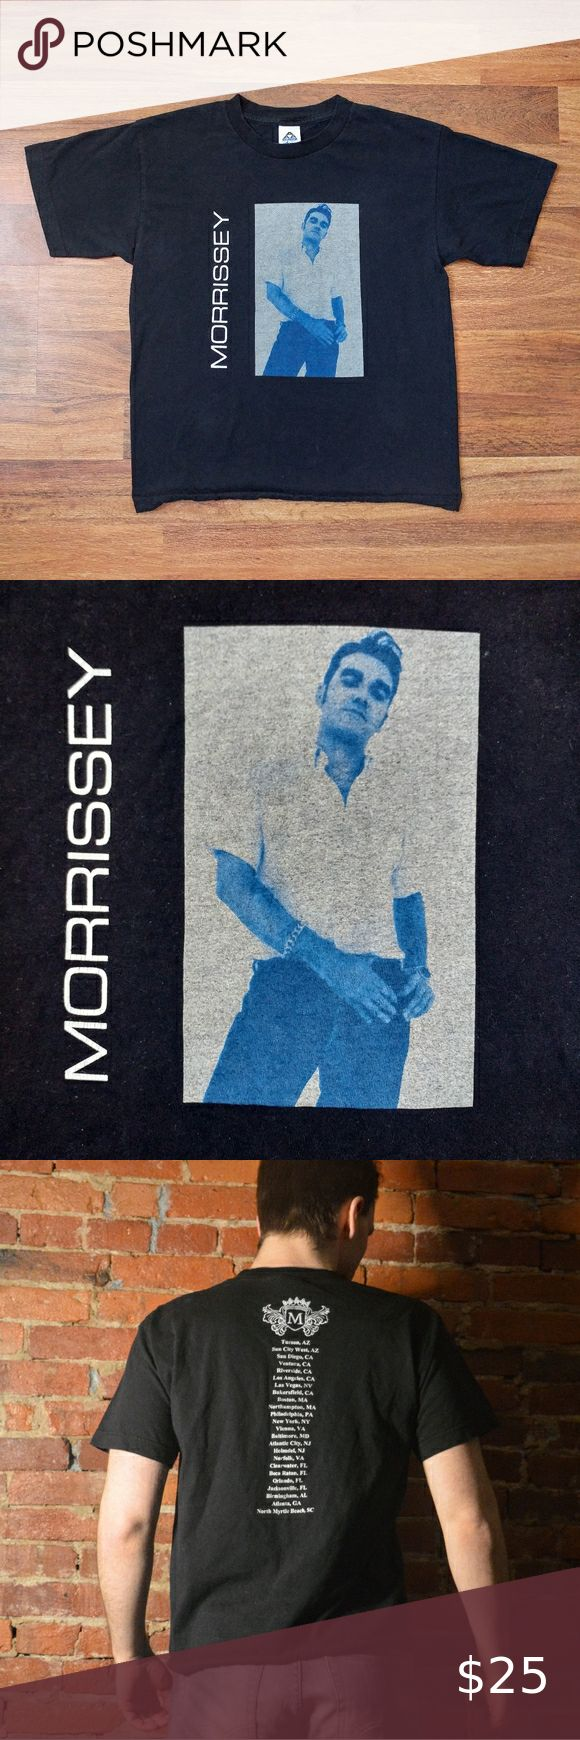 Vintage Morrissey Tour Band Tee The Smiths Band Tees Alstyle Apparel Tees